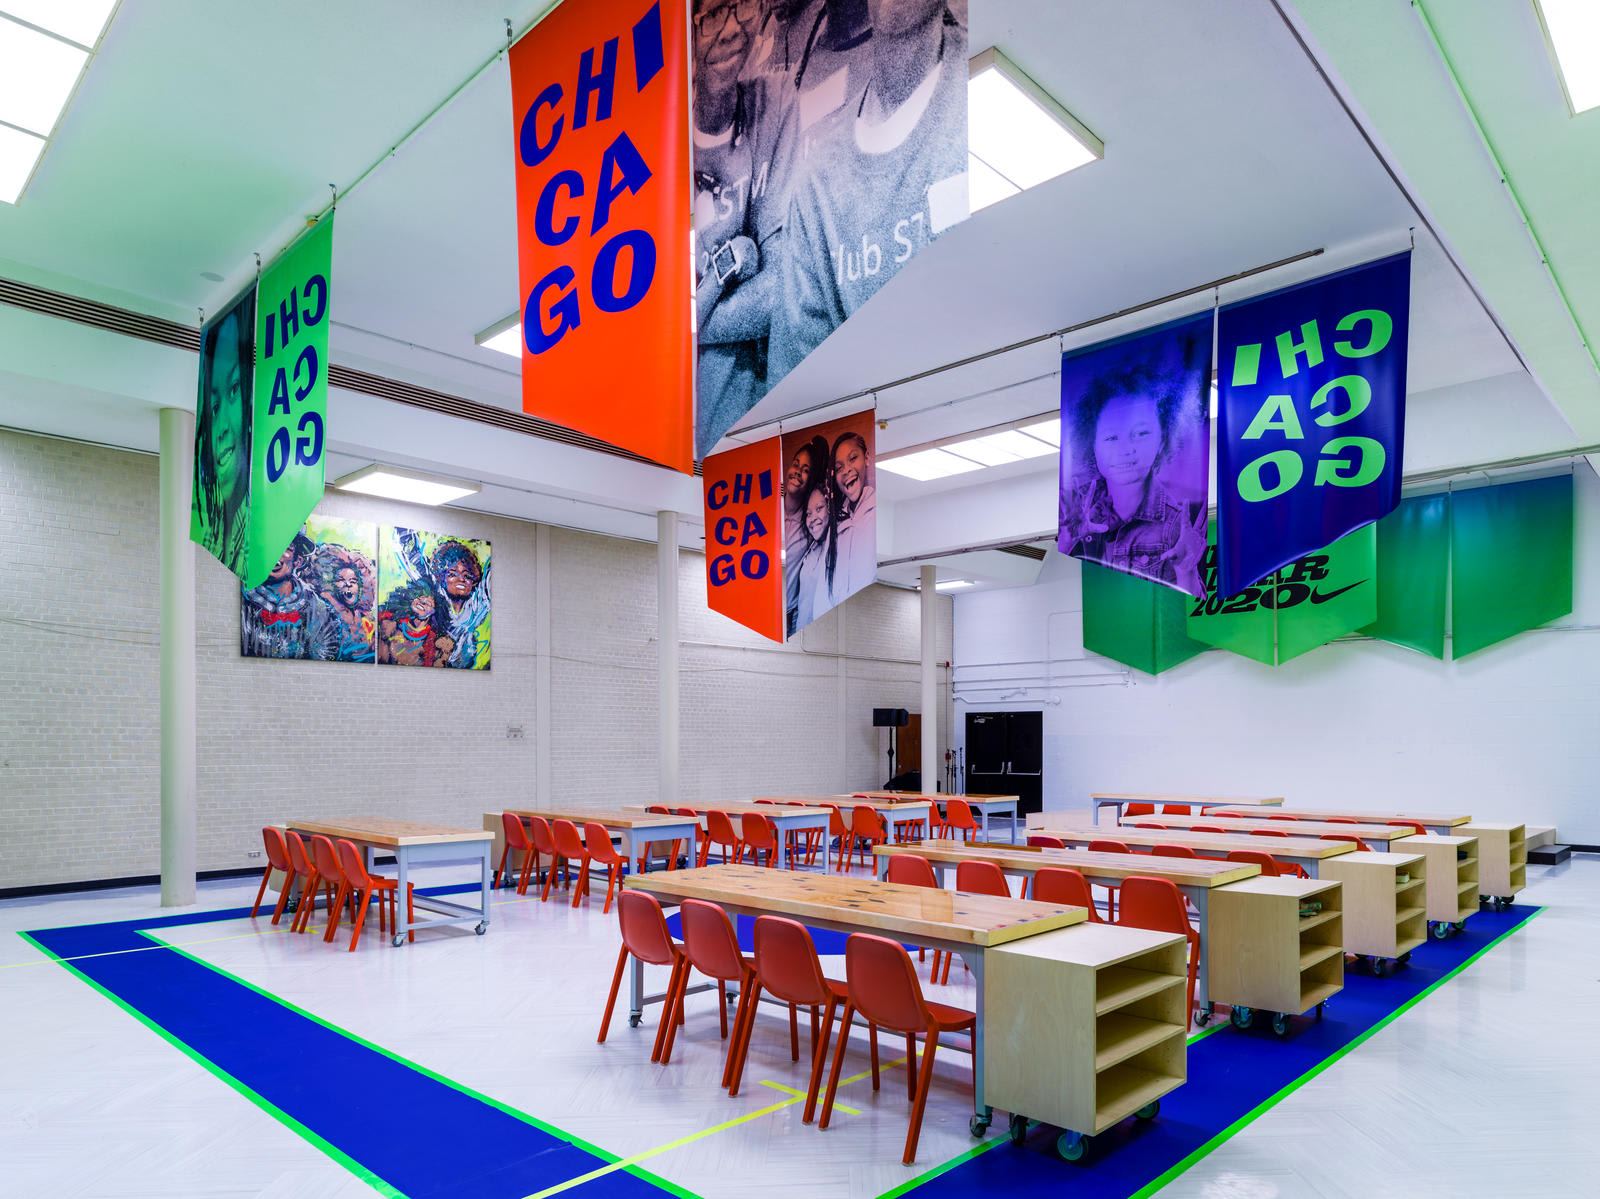 virgil-abloh-nike-boys-and-girls-club-of-chicago-classroom